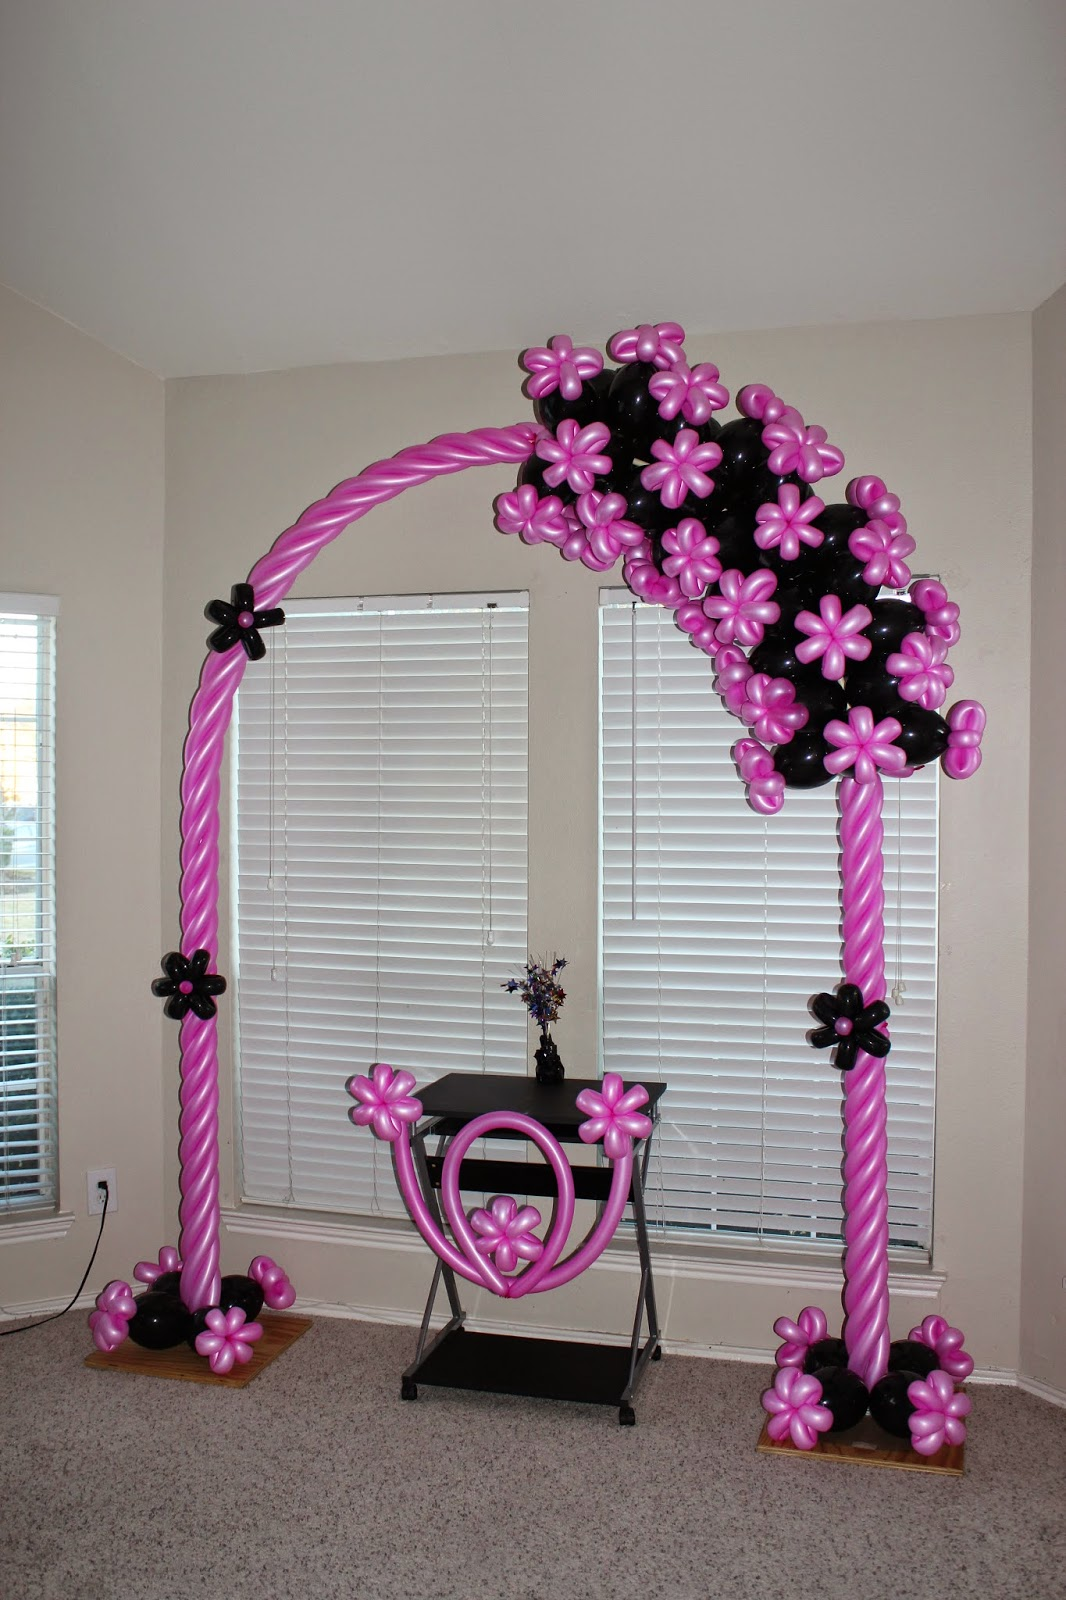 santo diamond balloon design balloon arch